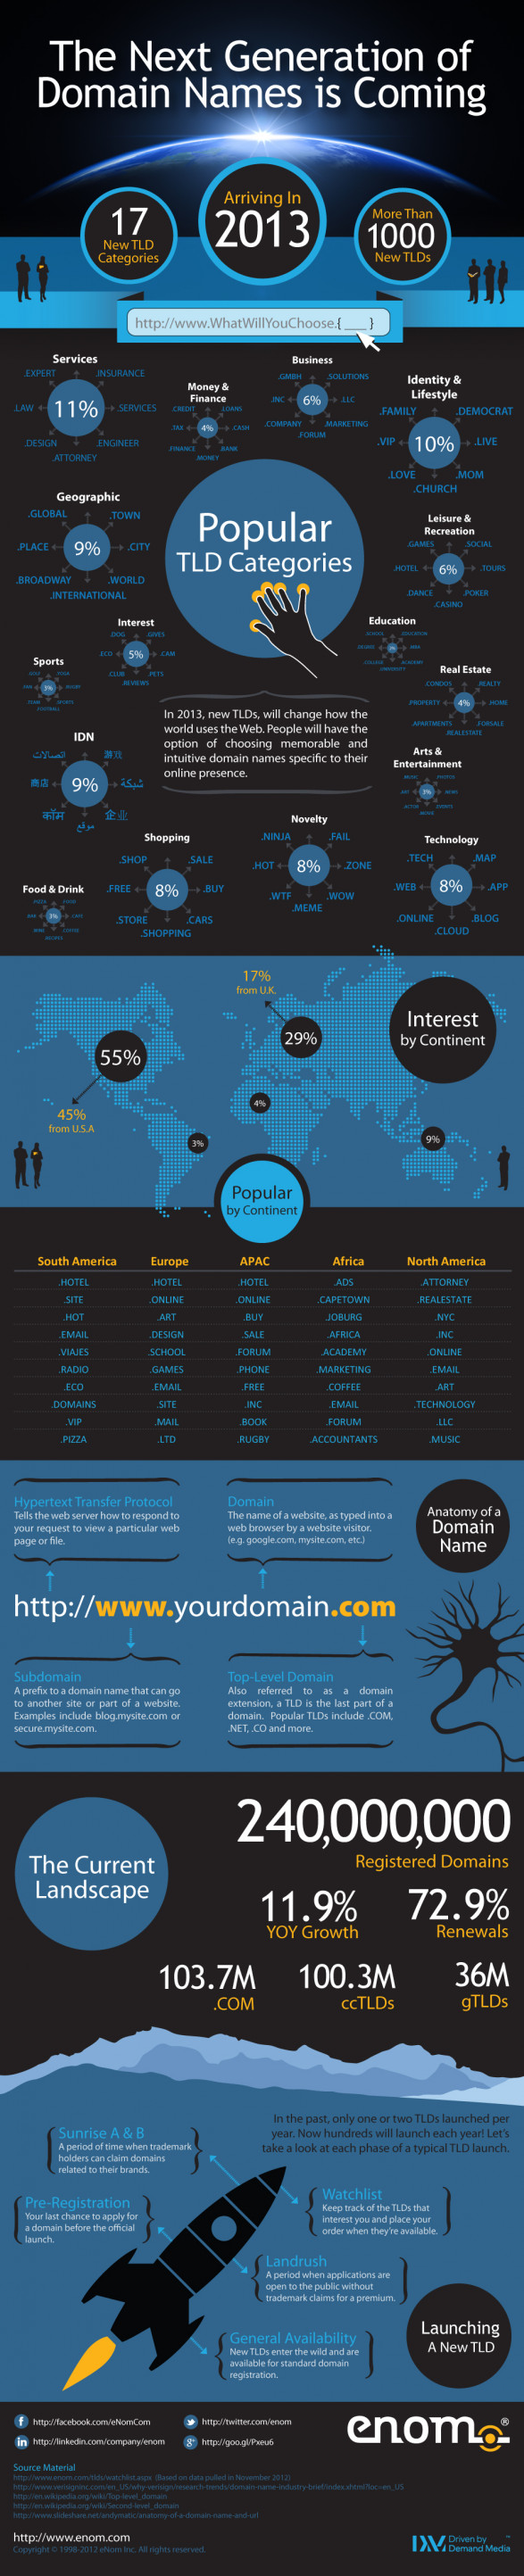 Most Popular New TLDs and Categories